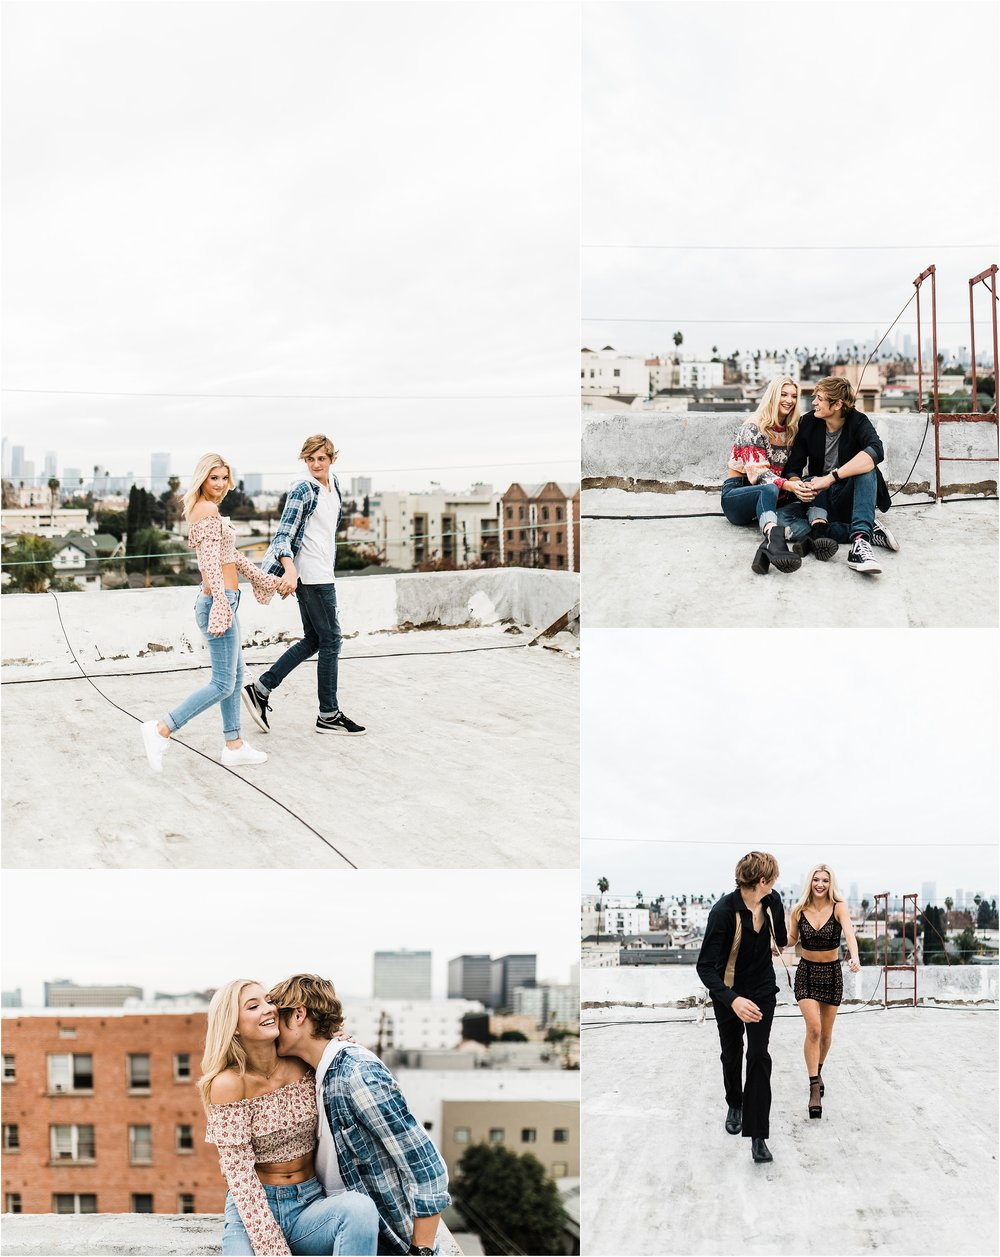 Koreatown-Downtown-Los-Angeles-DTLA-Engagement-Photos-Clarisse-Rae-Southern-California-Wedding-Photographer-&-Videographer-2